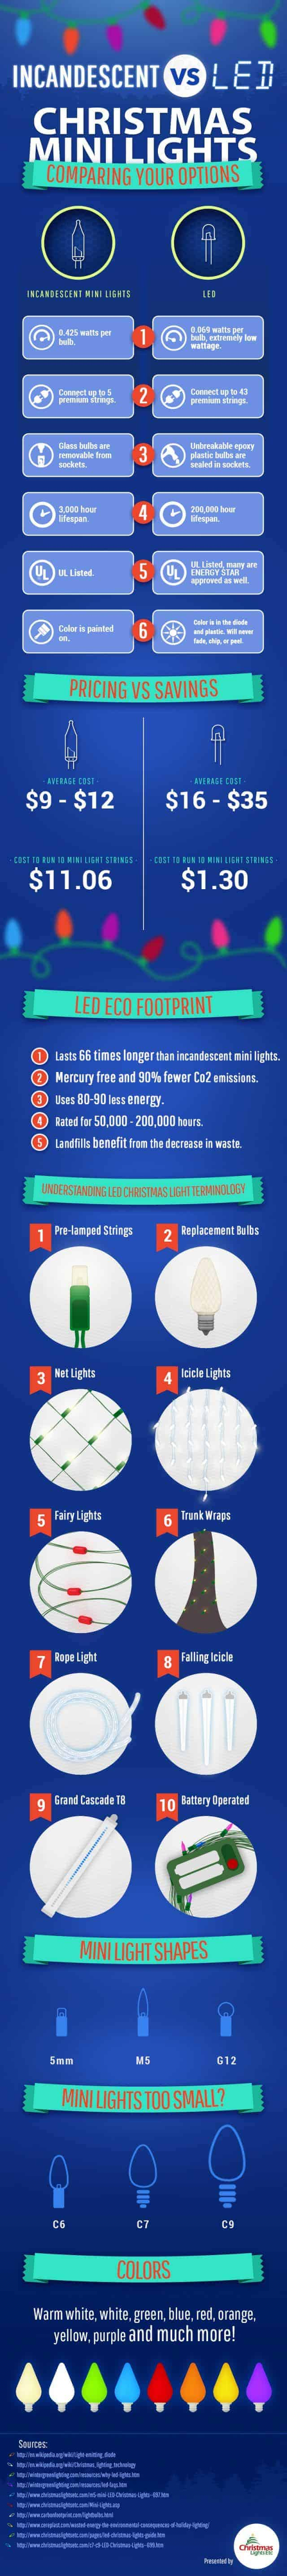 incandescent-vs-led-christmas-lights_526b06dc93d33